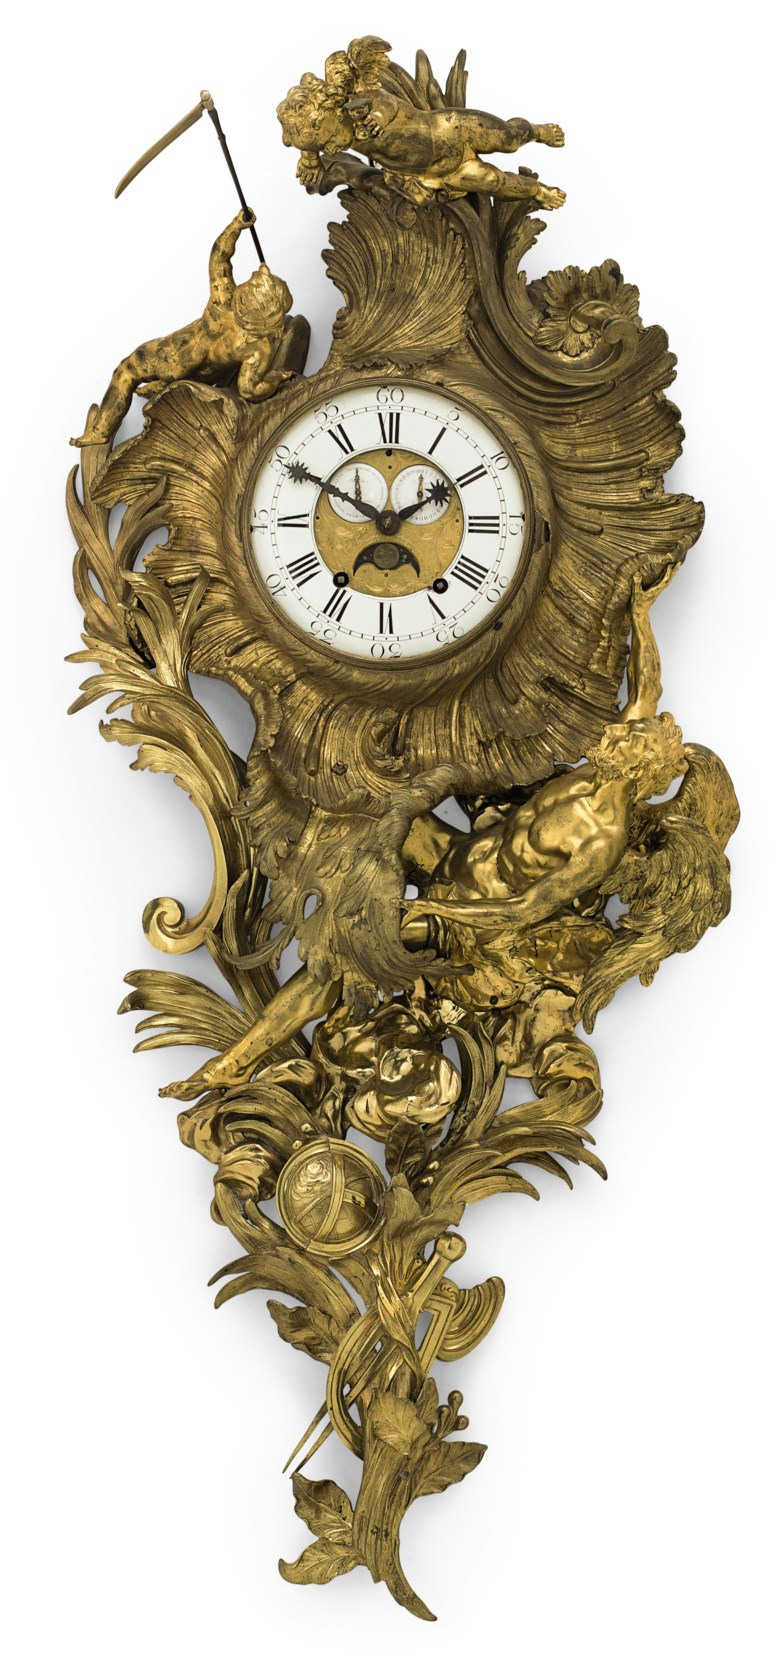 An early Louis XV ormolu cartel clock, after a design by Juste-Aurele Meissonnier, circa 1735-40, with associated movement, the dial signed Robin, Paris. 53 in (134.5 cm) high, 22 in (56 cm) wide. Sold for $100,000 on 20 April 2018 at Christie's in New York